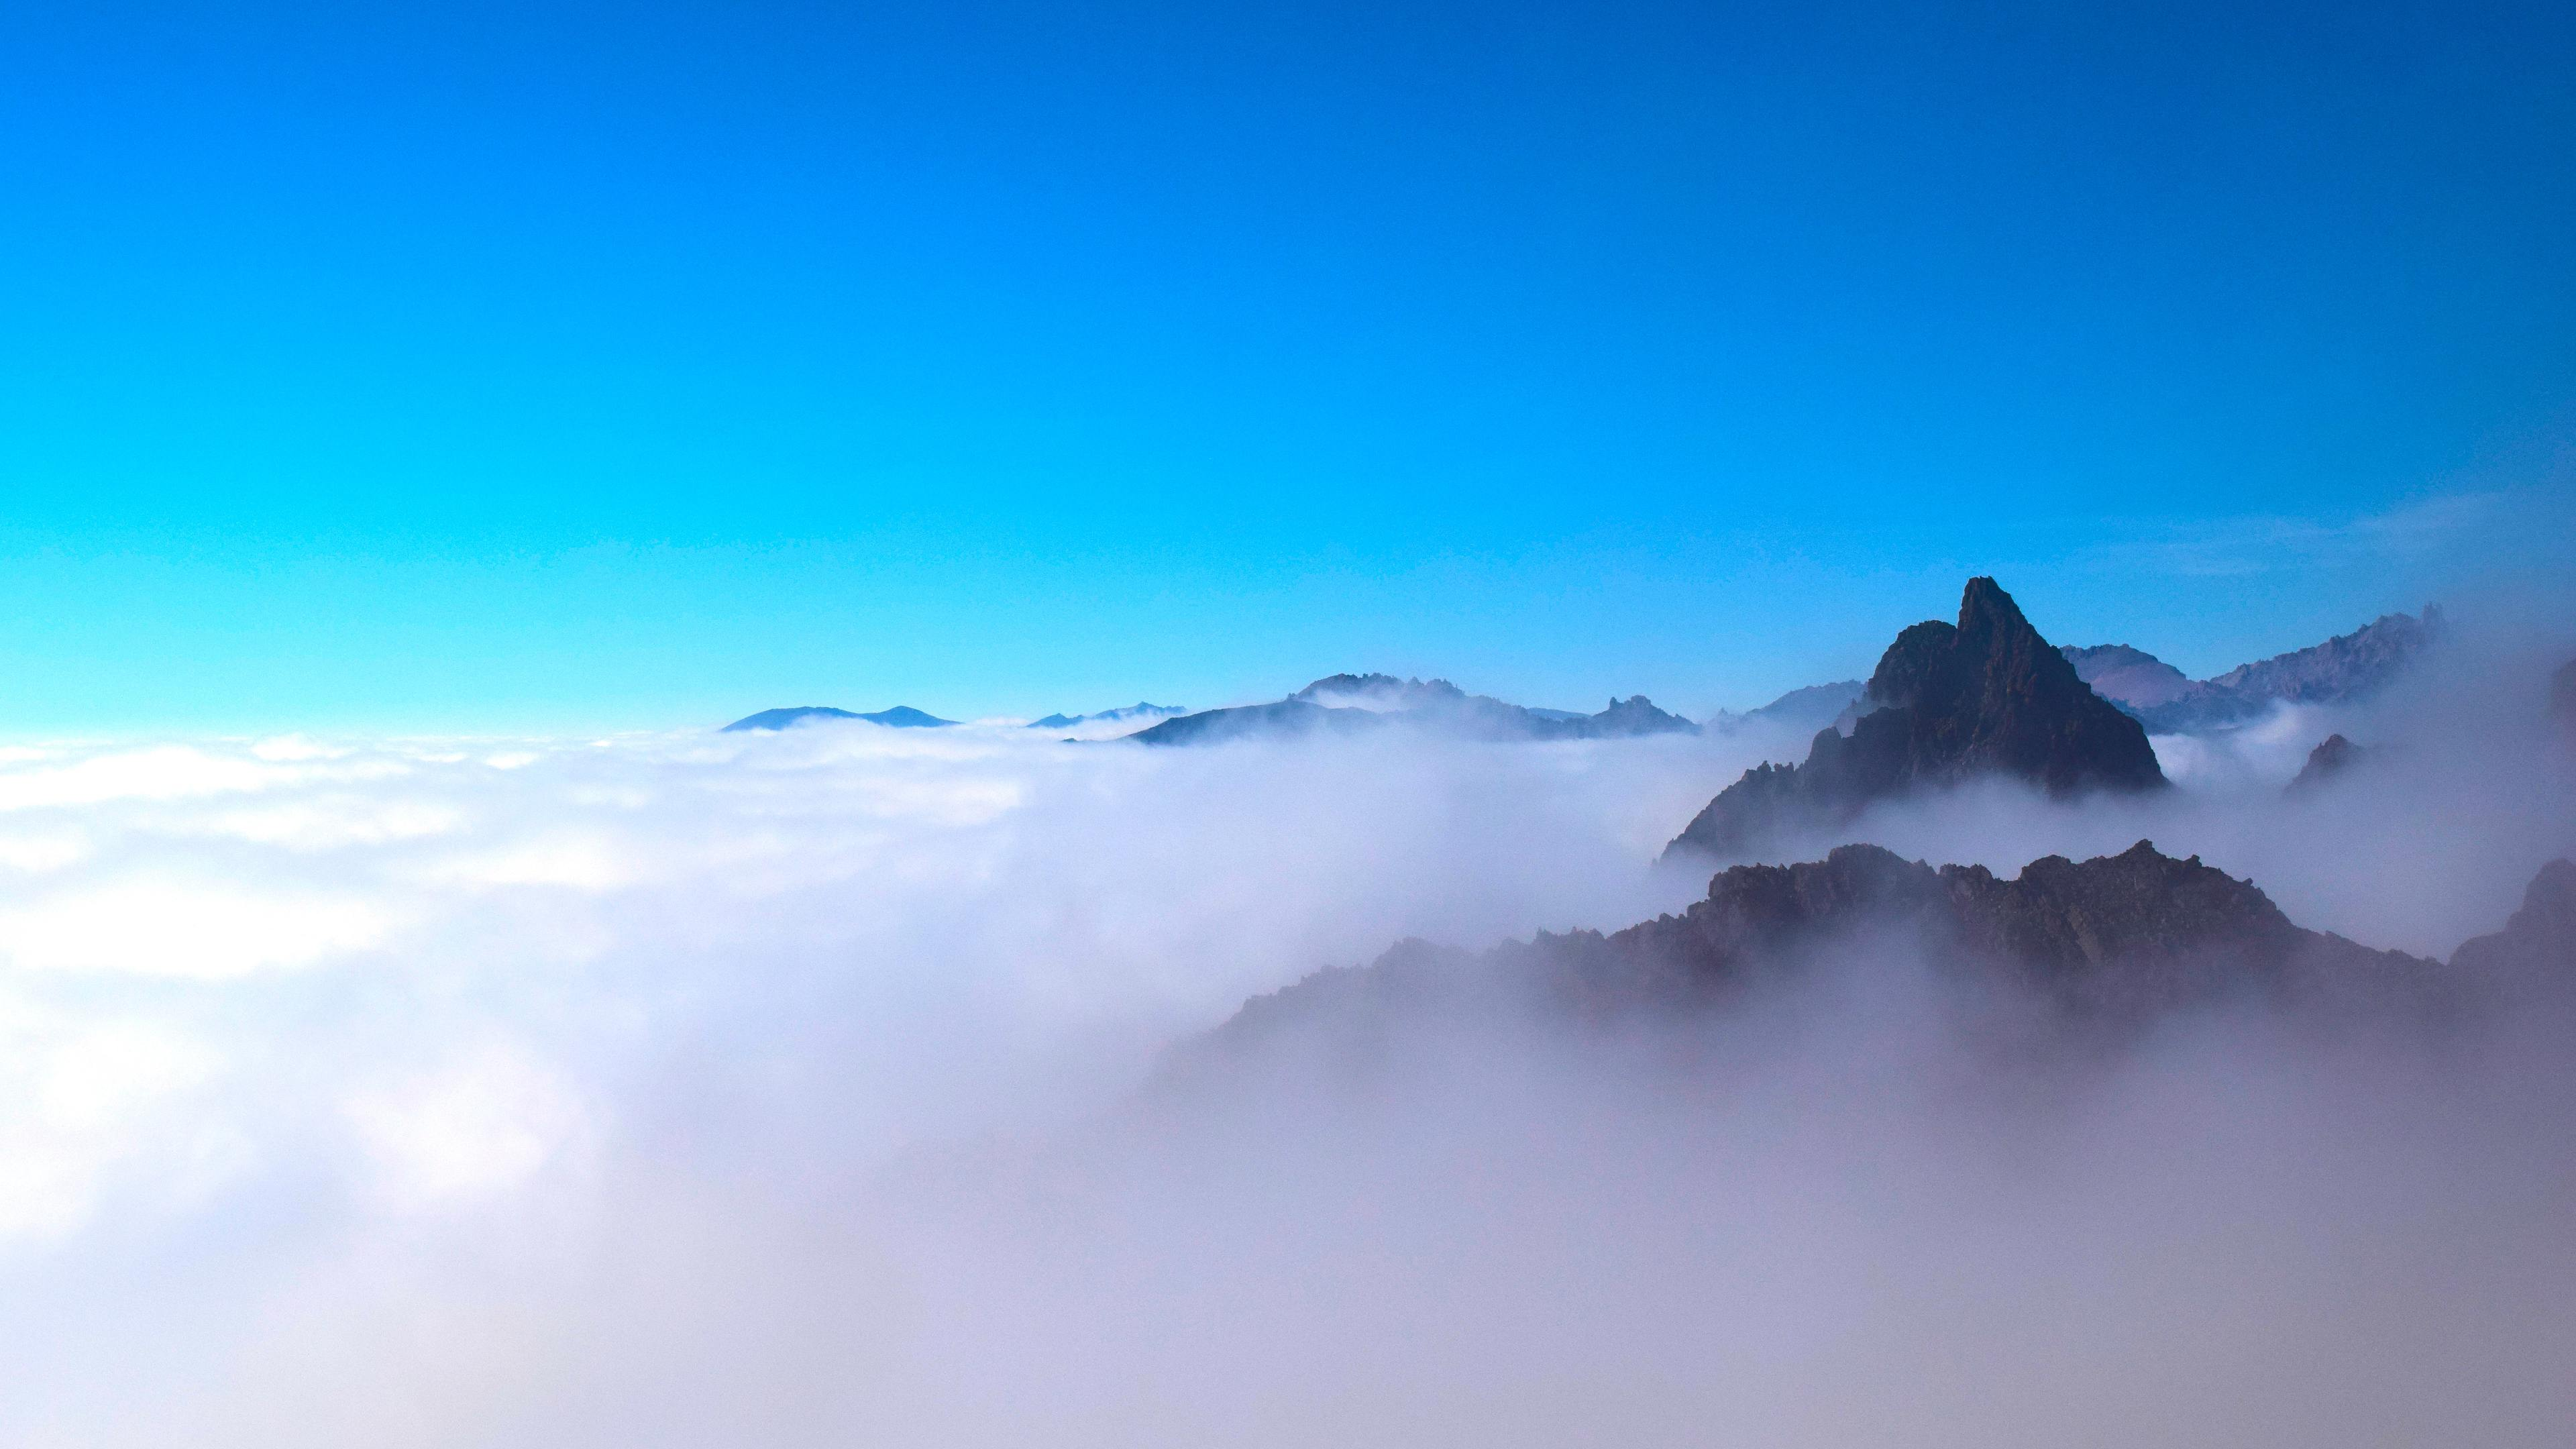 sea of clouds mountains peak 5k 1540141561 - Sea Of Clouds Mountains Peak 5k - sea of clouds wallpapers, peak wallpapers, nature wallpapers, mountains wallpapers, hd-wallpapers, 5k wallpapers, 4k-wallpapers